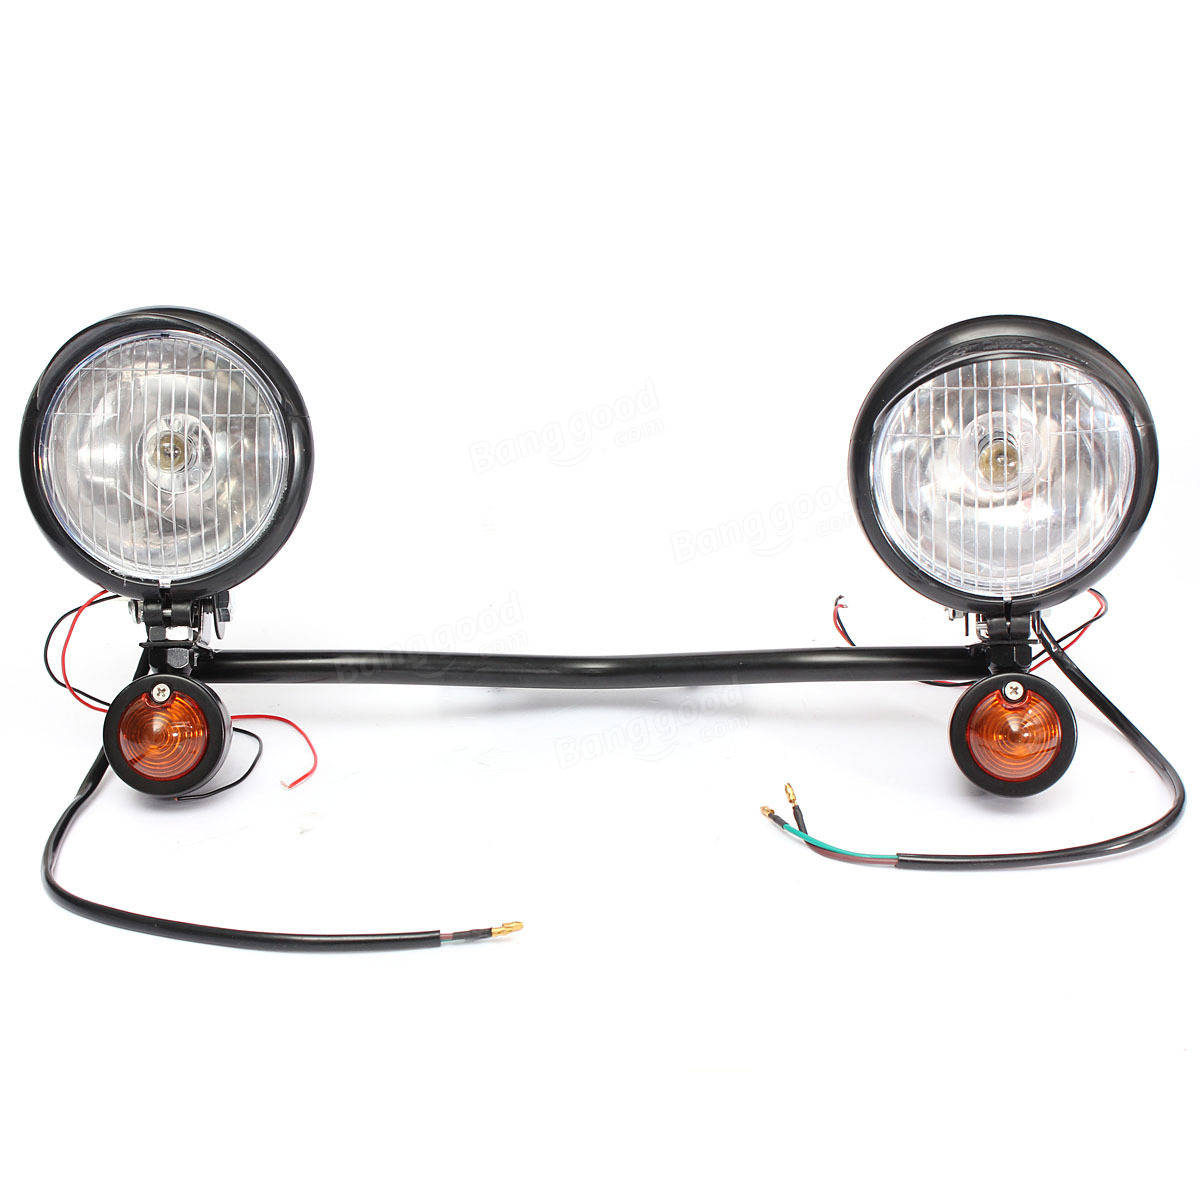 Motorcycle Spot Lightt Bar Set With Two Turn Signals For